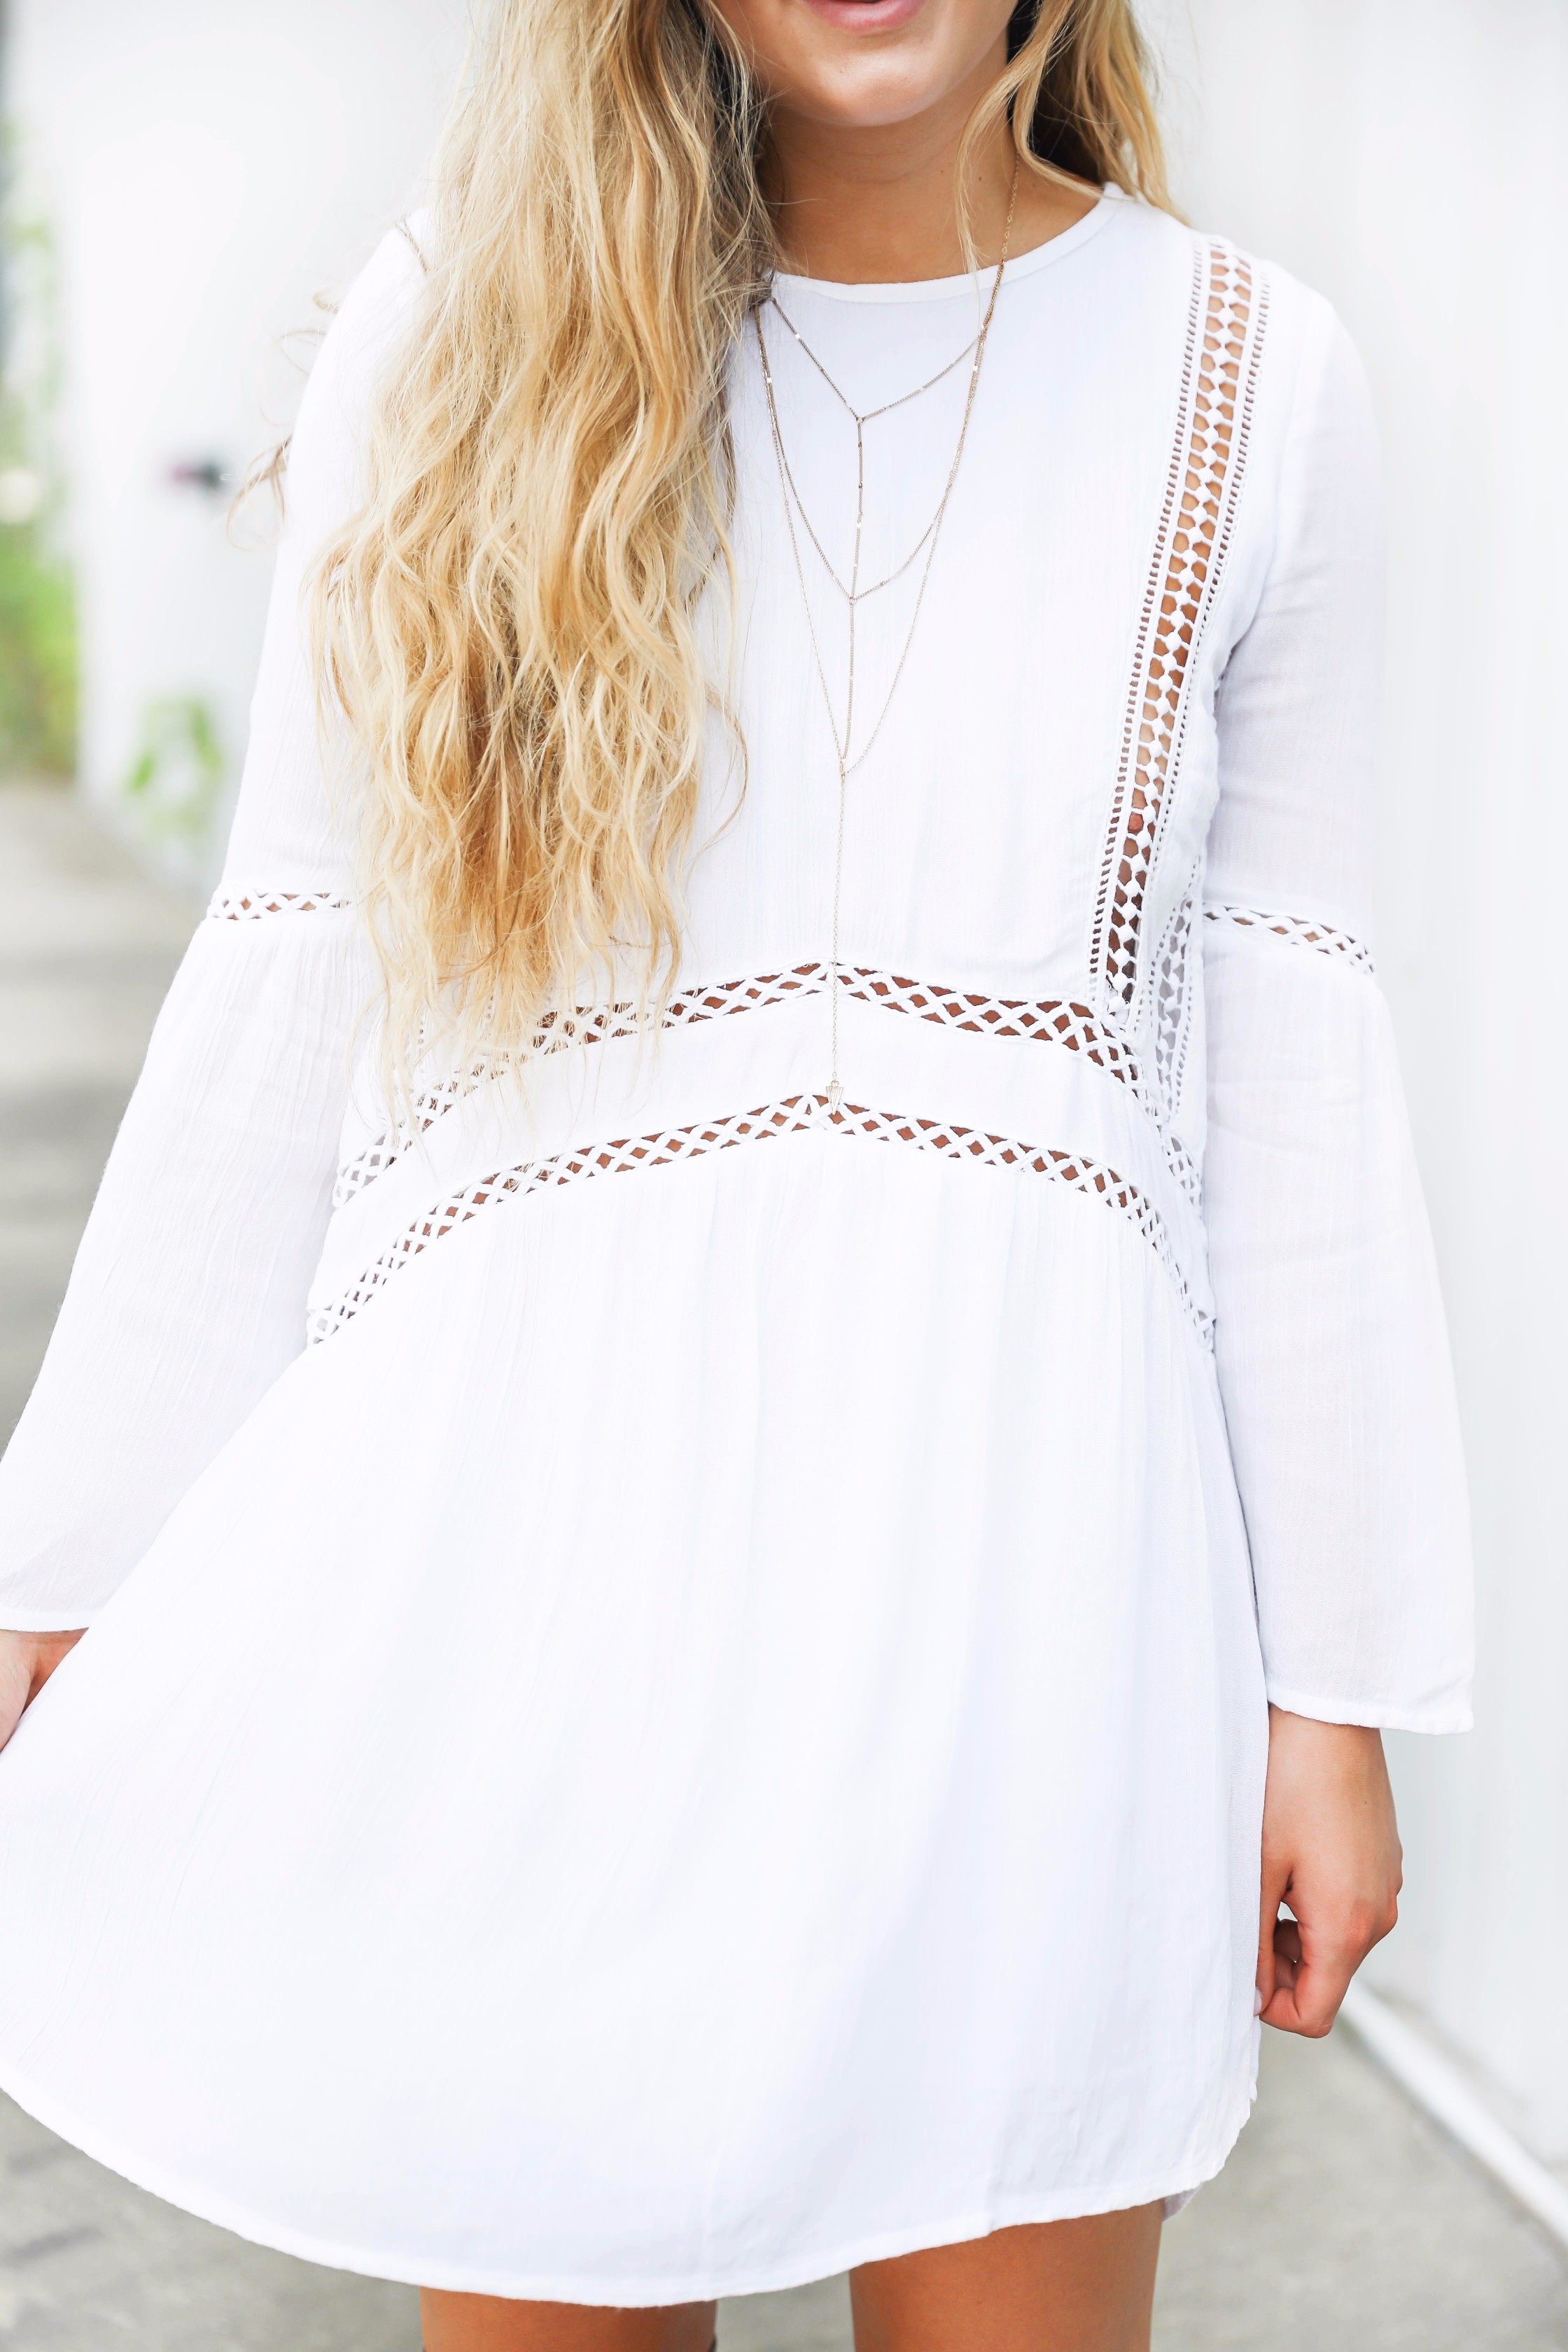 White boho cutout dress with over the knee light brown suede boots! Paired with light blue circle sunglasses. Such a cute dress for summer going into fall! Find the details on fashion blog daily dose of charm by lauren lindmark